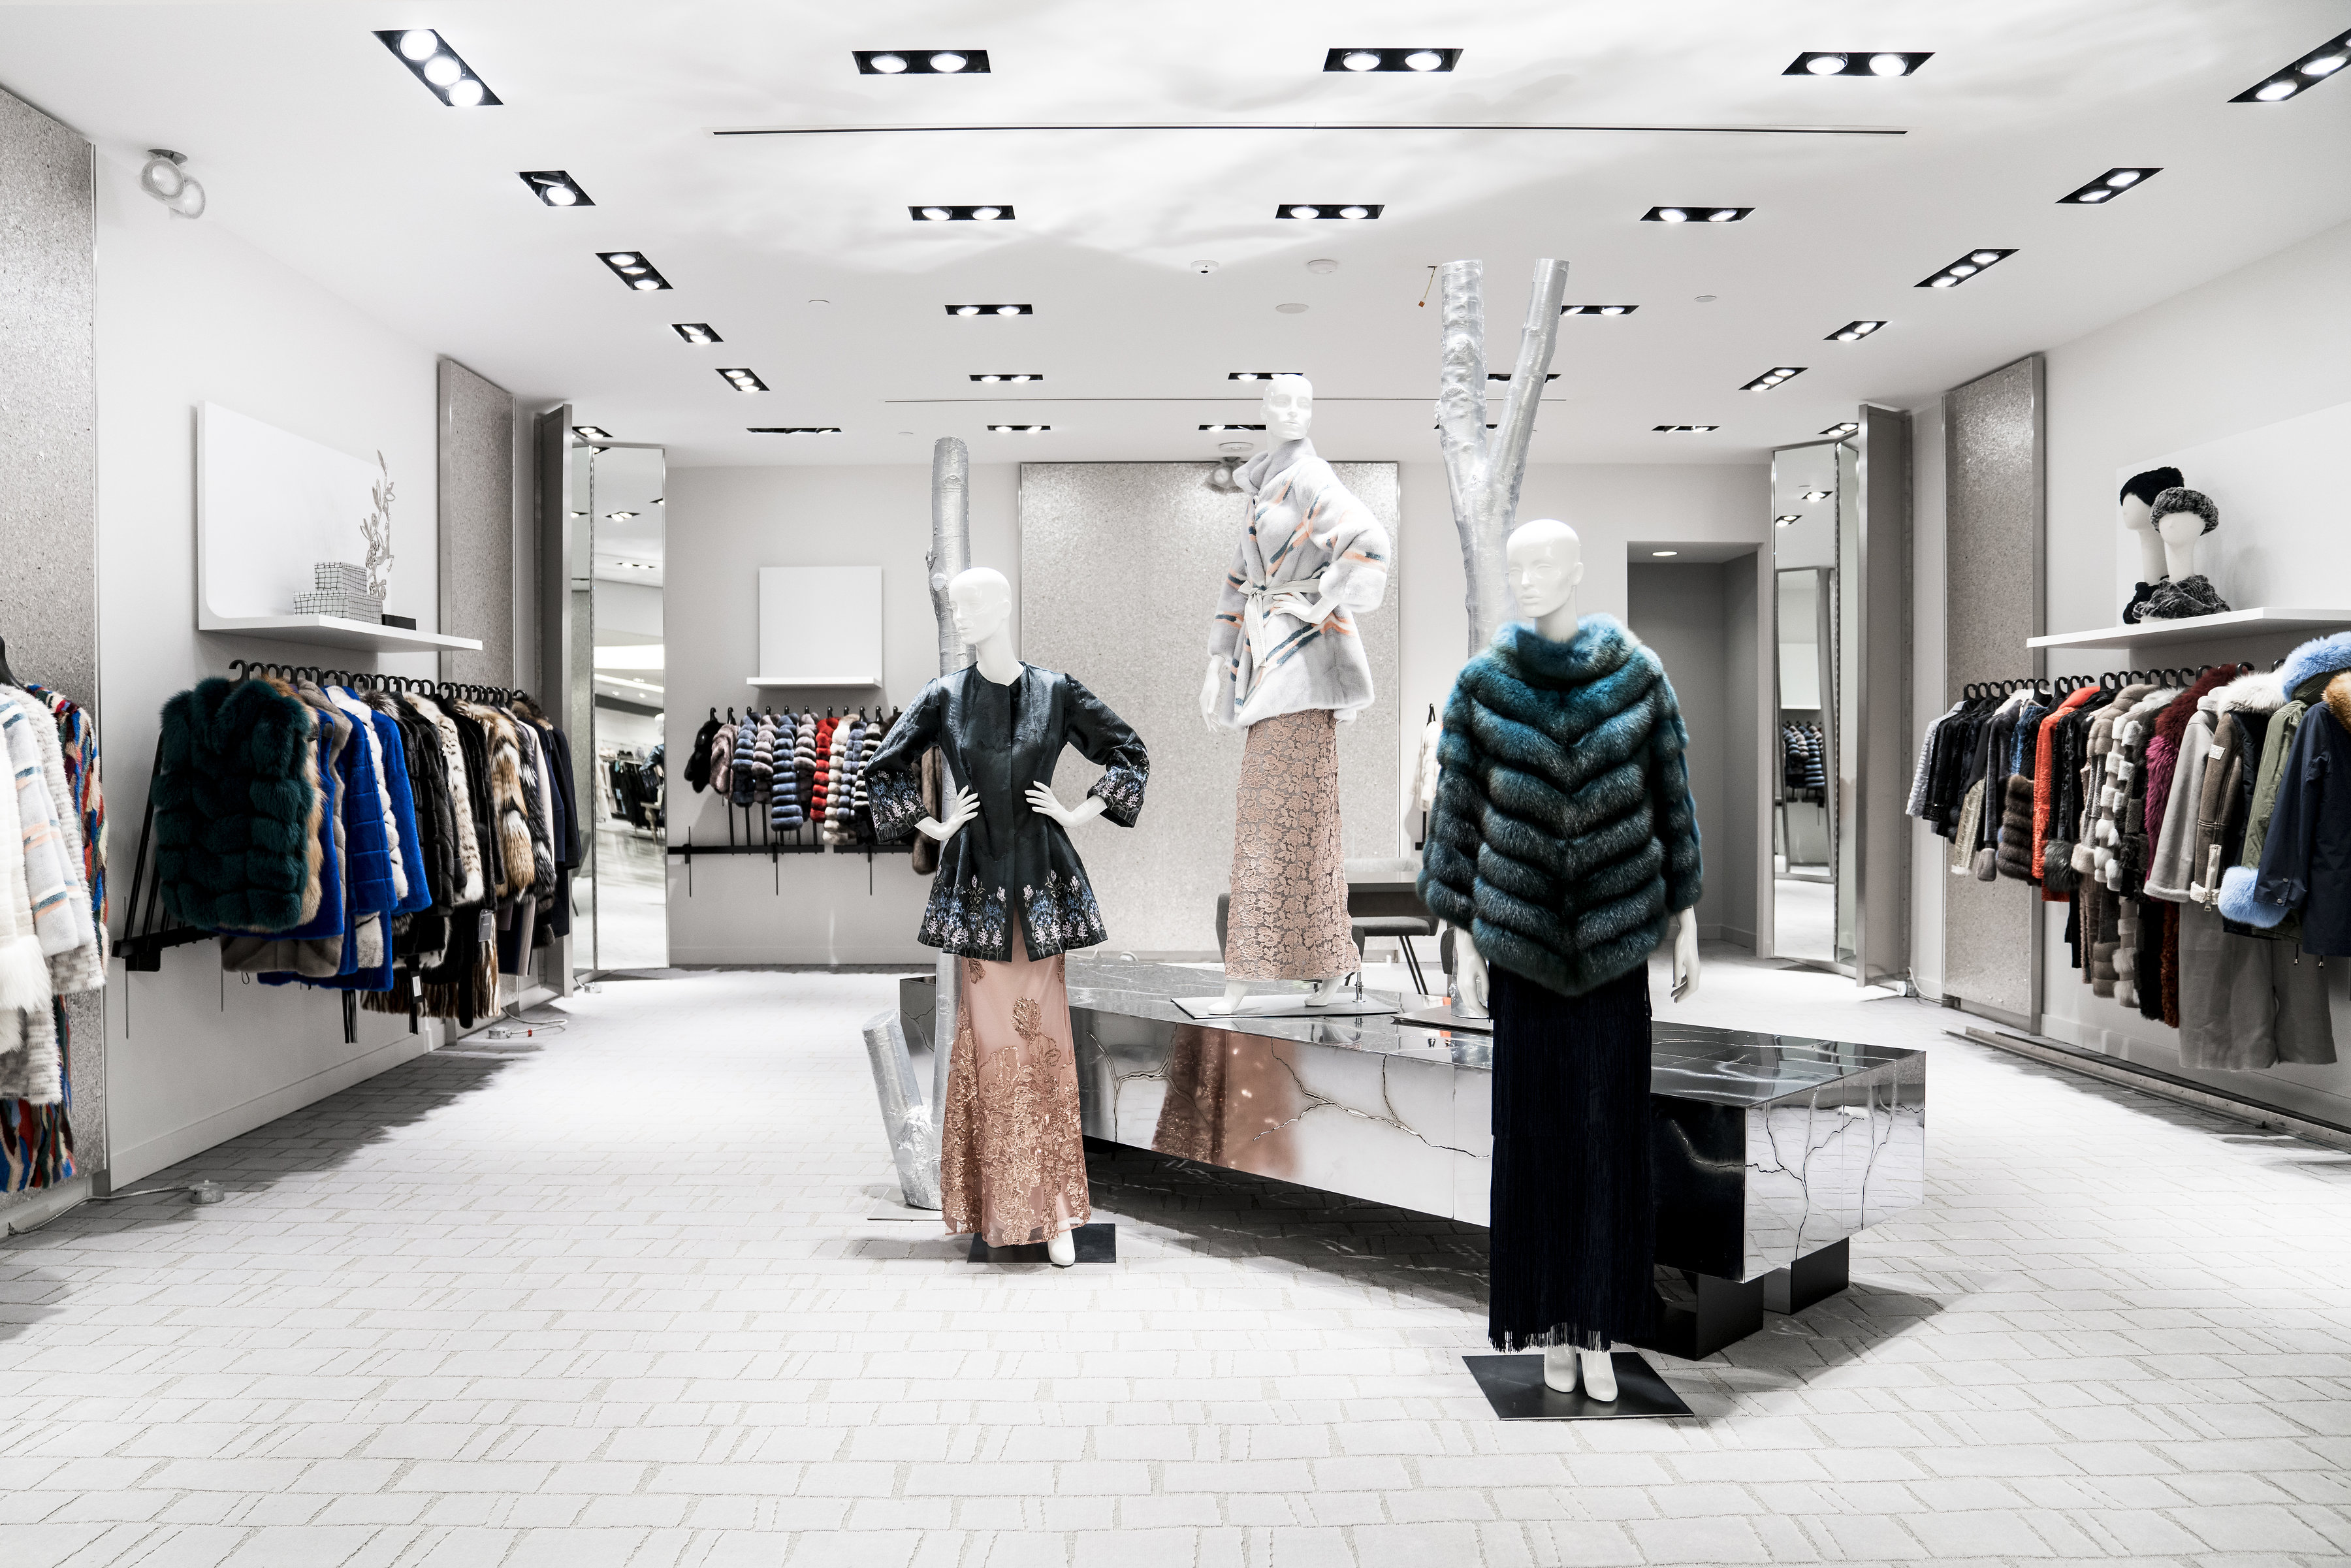 Saks Fifth Avenue Calgary: Luxury For Everyone - Styled to Sparkle